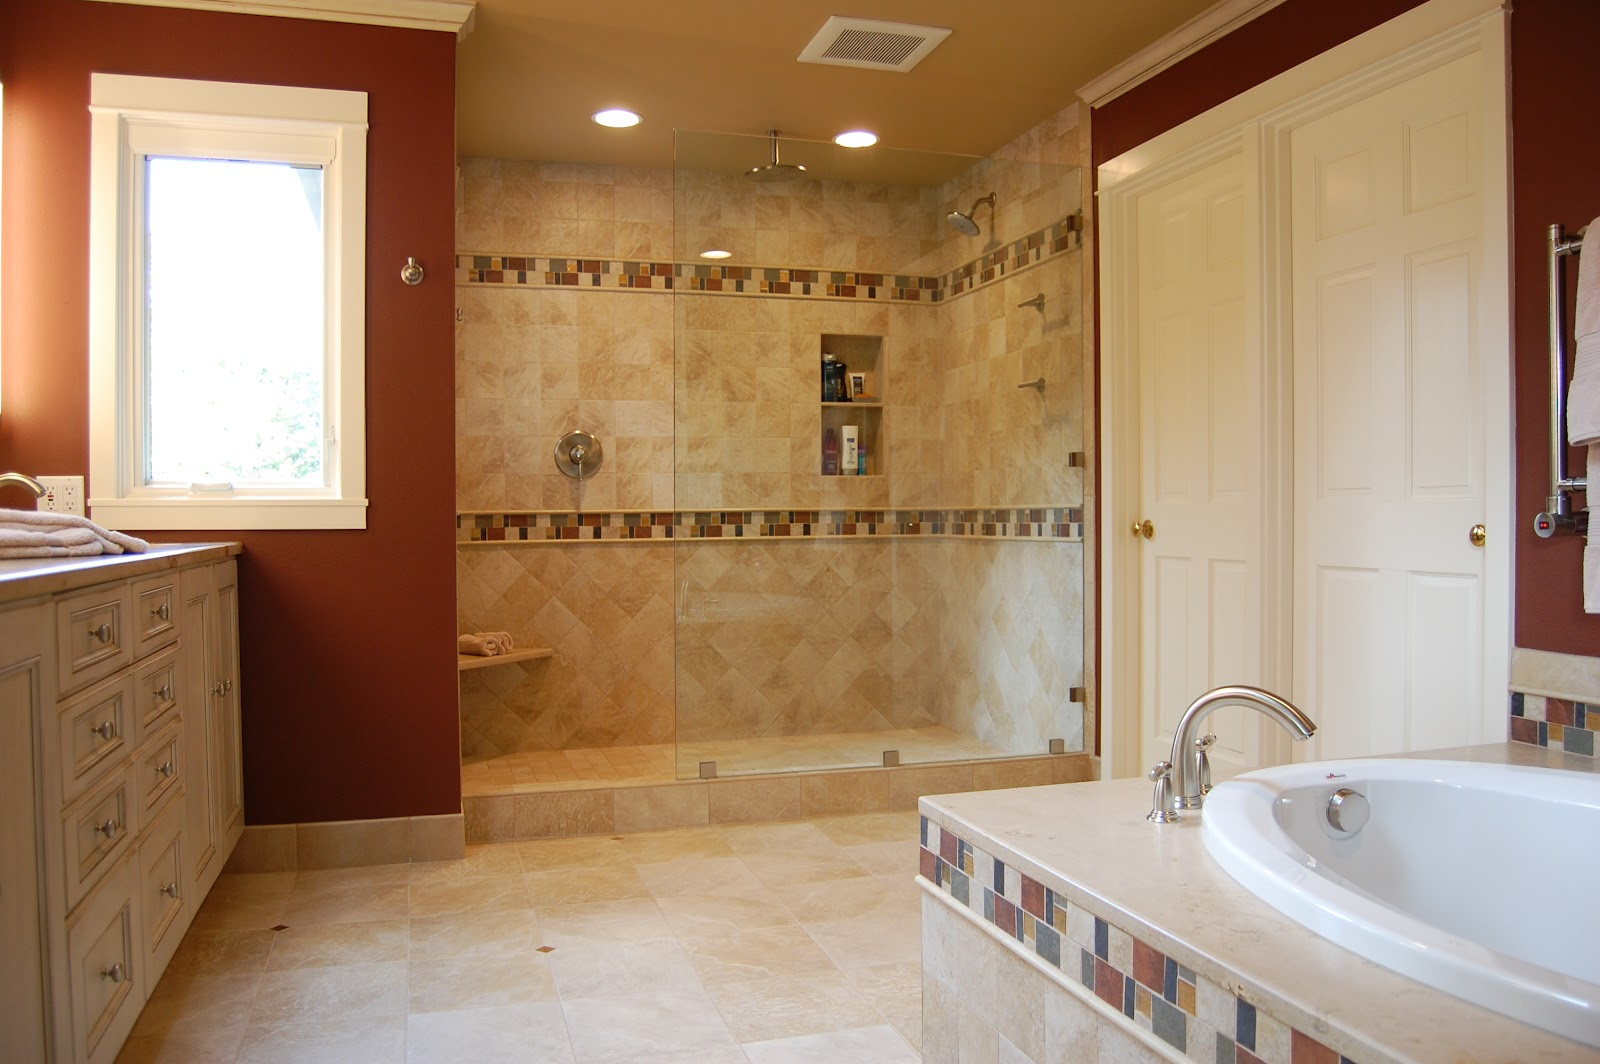 Bathroom remodel ideas homesfeed for Cool bathroom remodel ideas